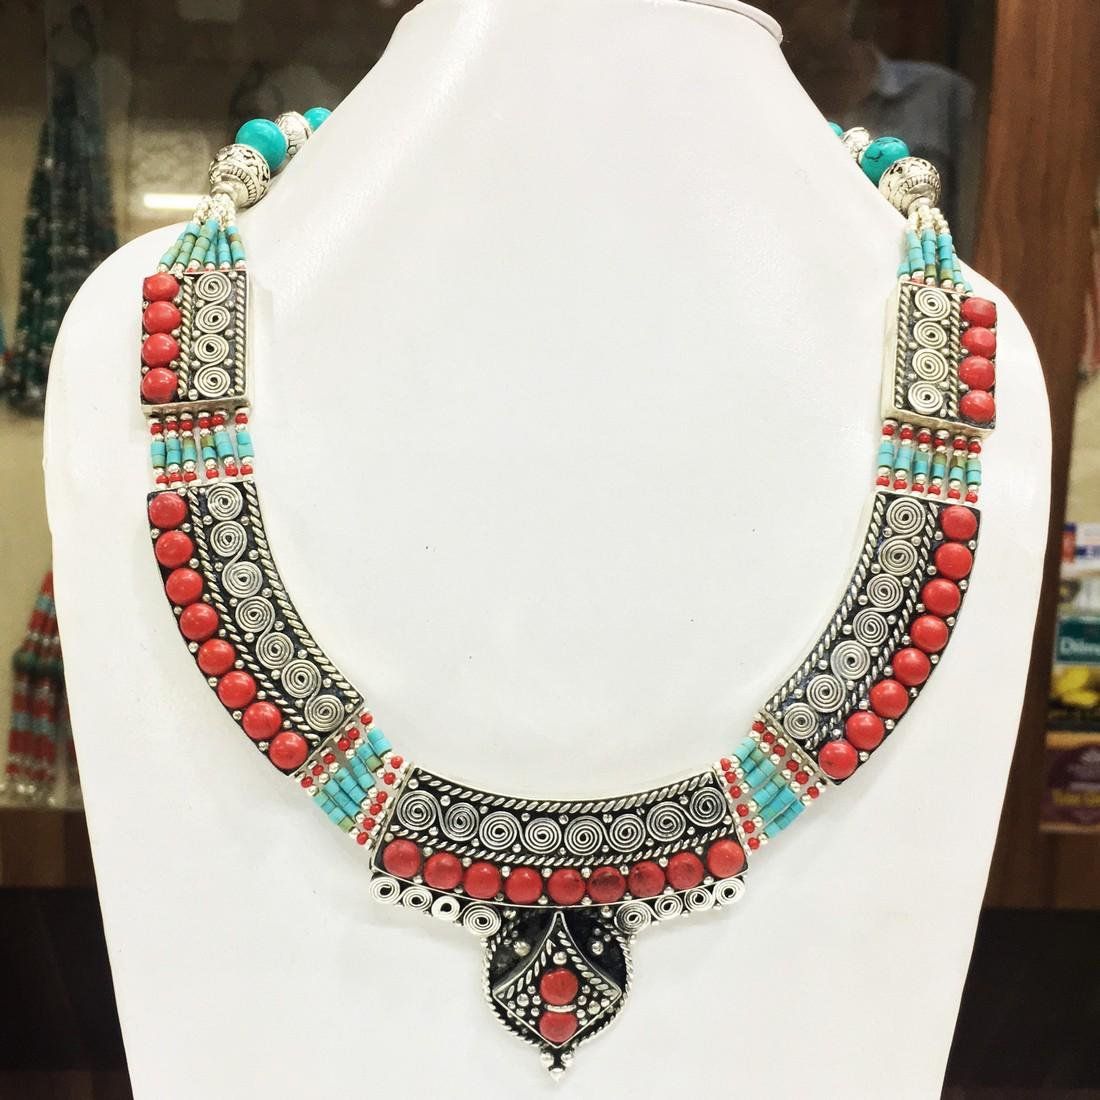 Tibetan Turquoise Unique Handmade Necklace